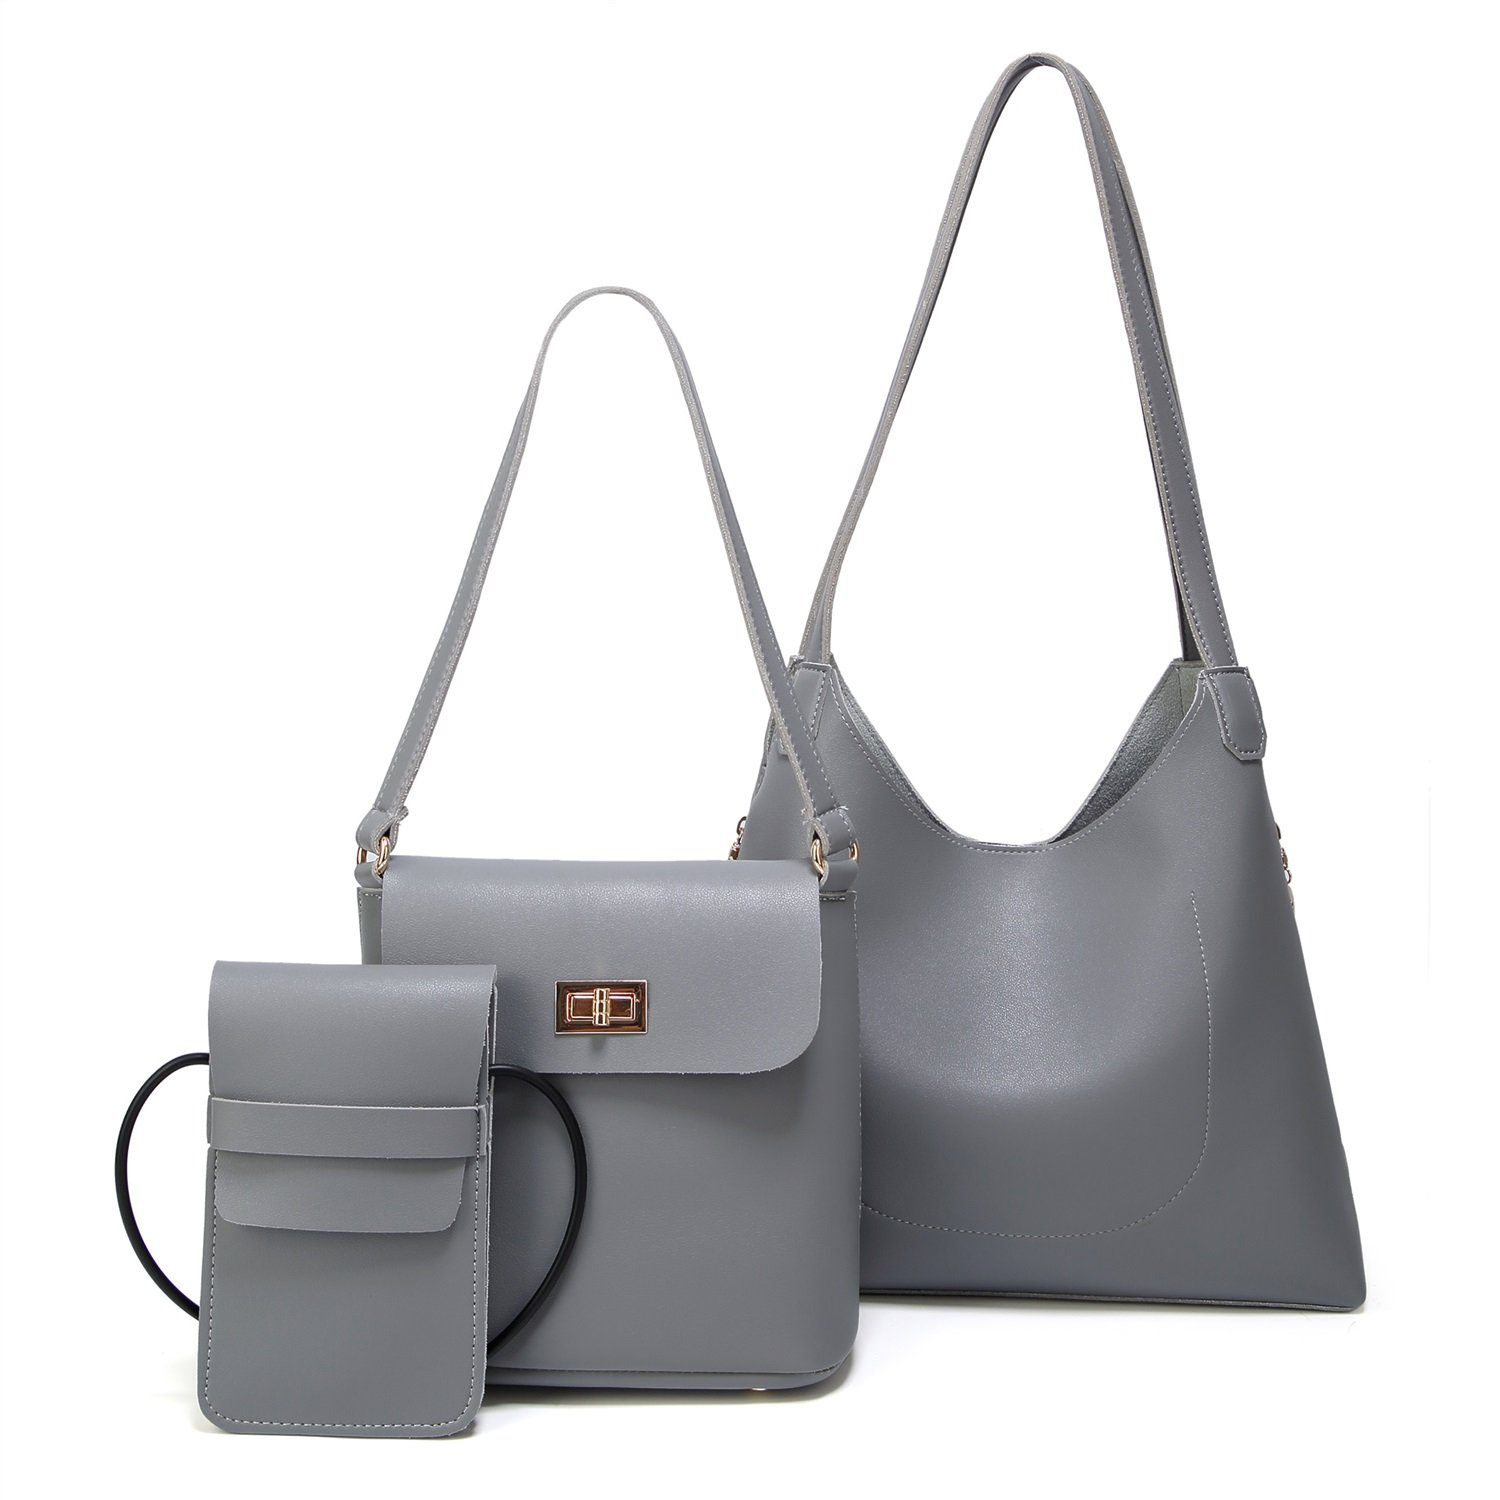 Color : Gray, Size : M L.Z.HHZL Crossbody Bag Daughter Package Three-Piece Fashion Simple Shoulder Bag Big Bag Messenger Bag Women Wallet